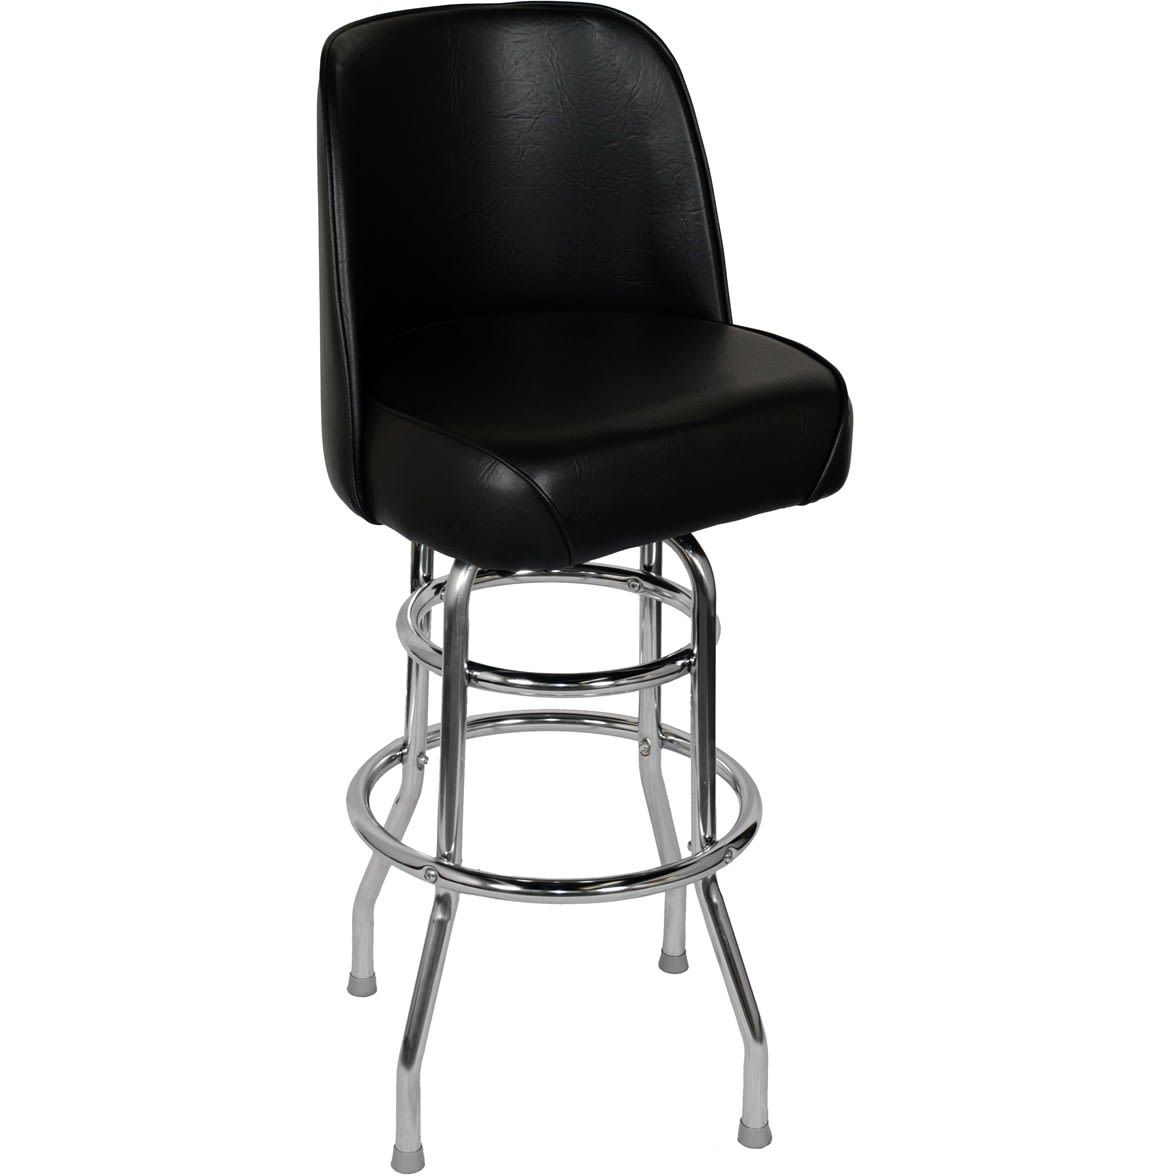 Chrome Swivel with a Double Ring & Bucket Seat